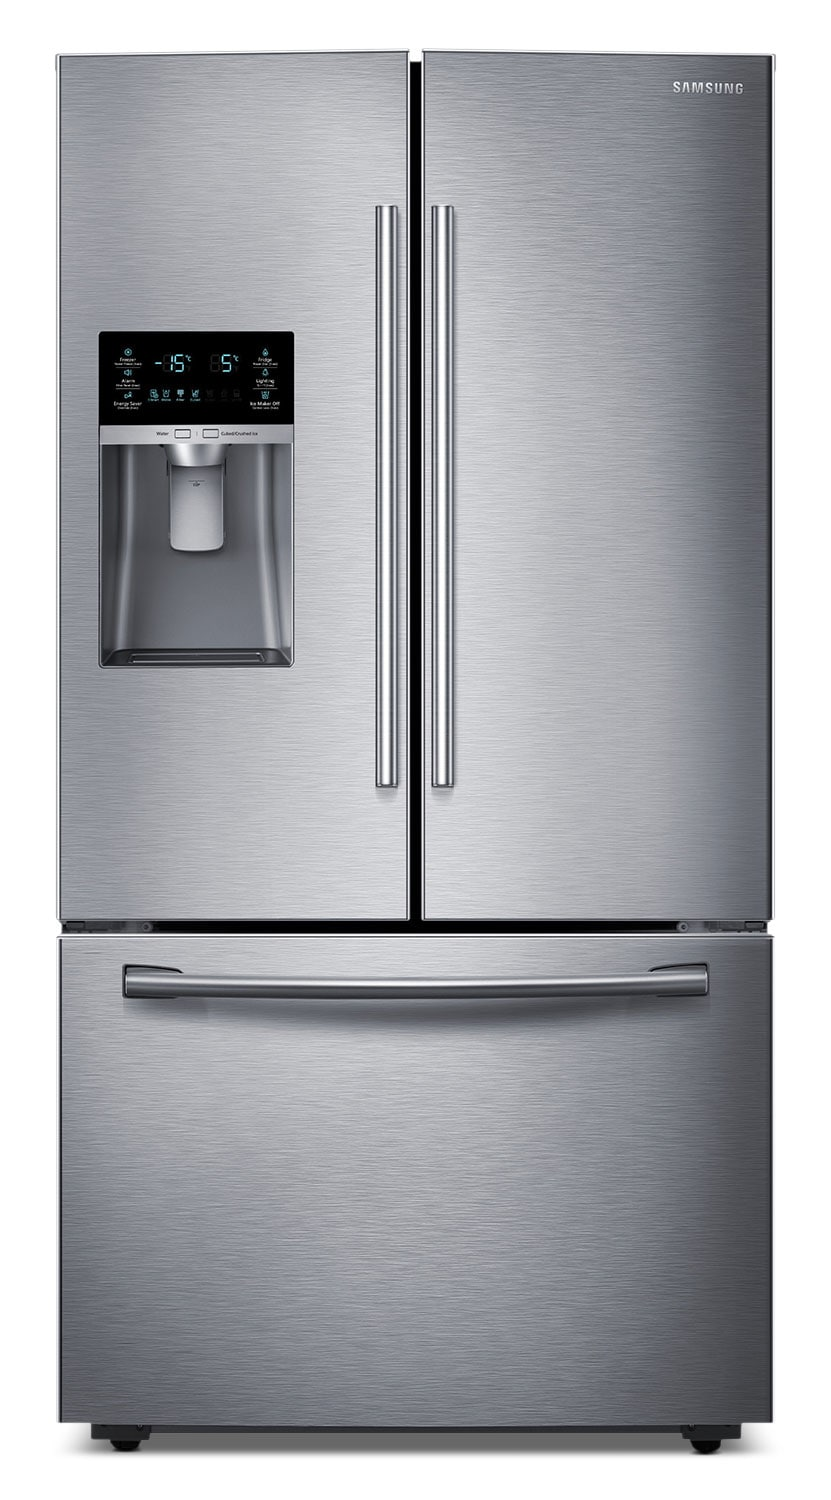 Samsung 28 Cu. Ft. French-Door Bottom-Freezer Refrigerator – Stainless Steel